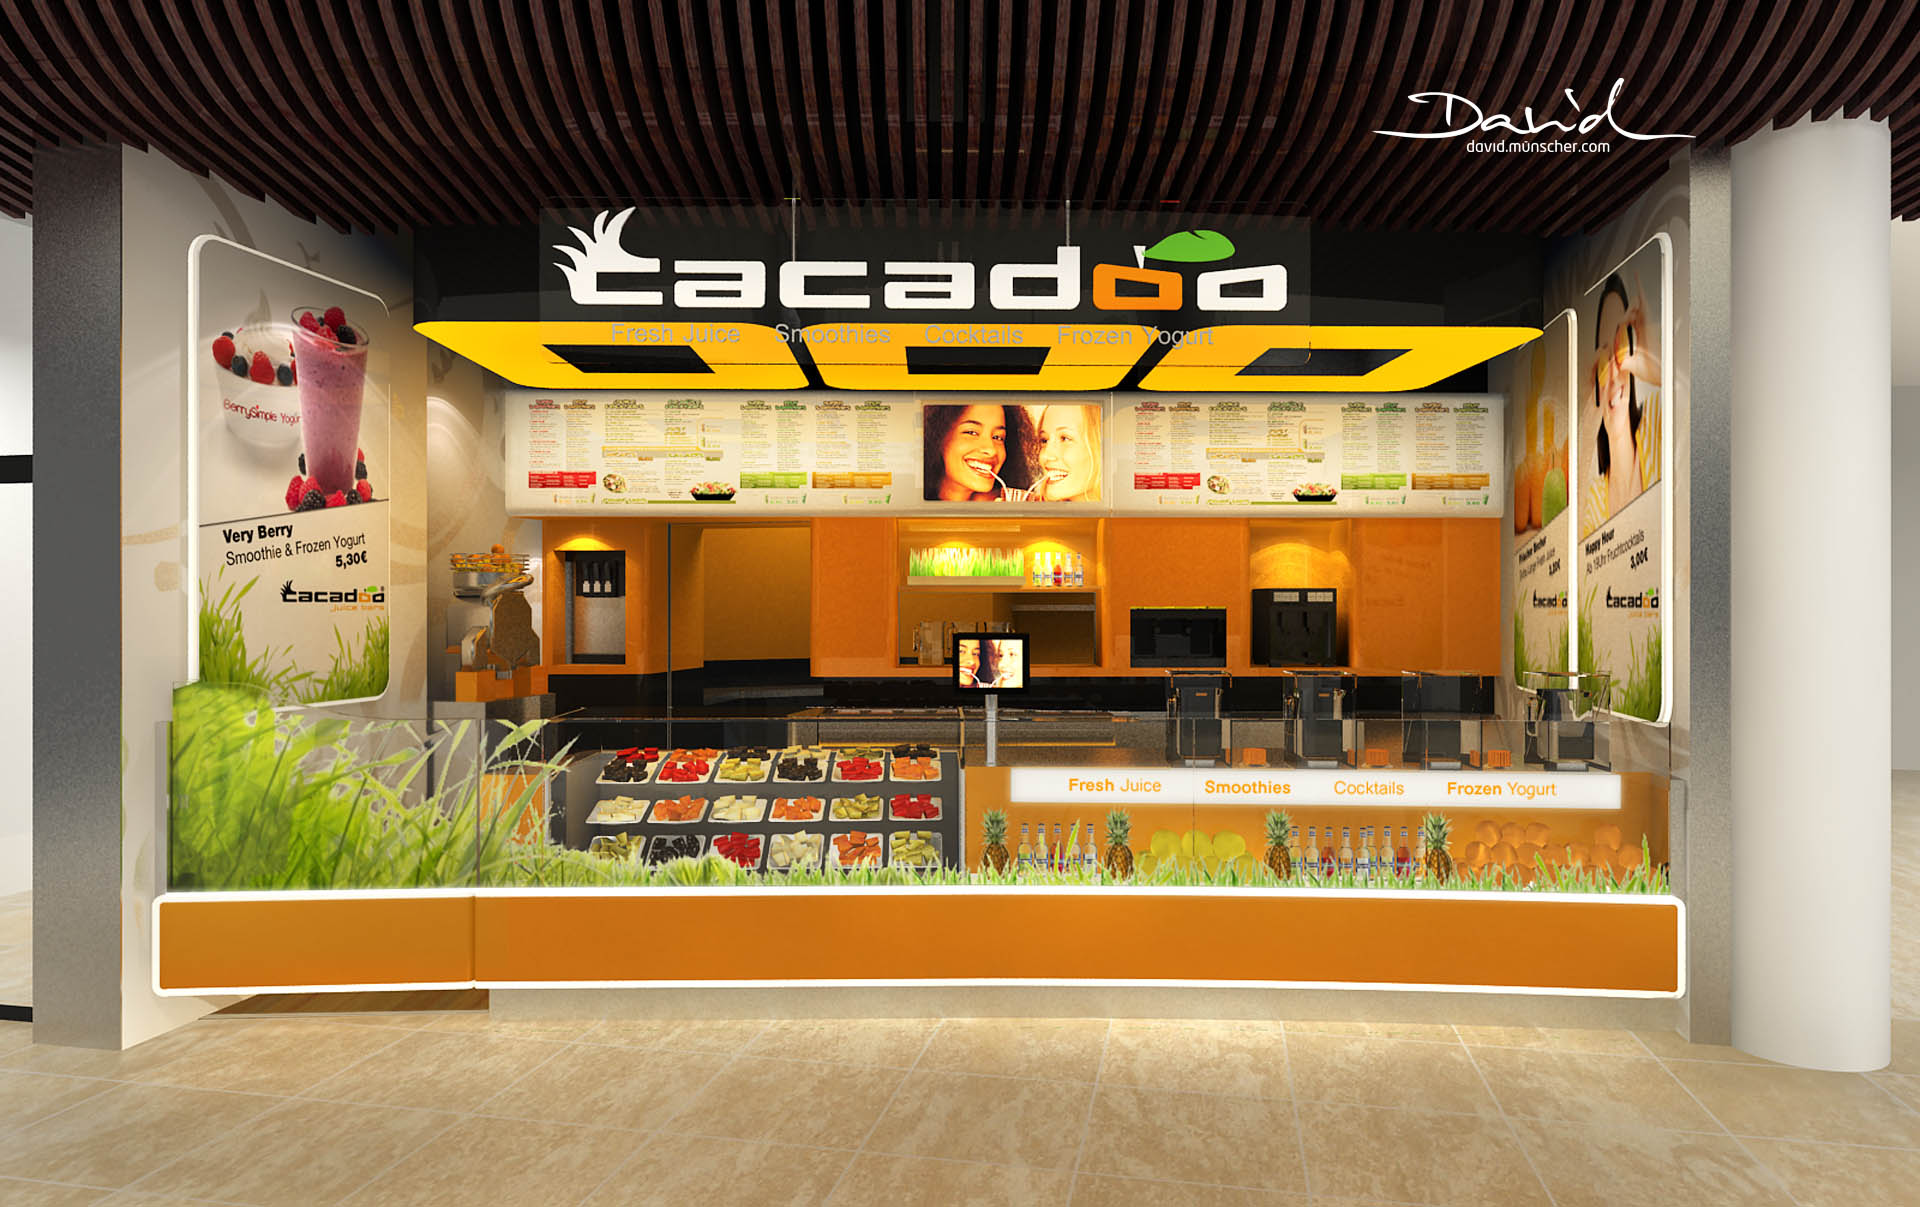 Cacadoo Juice Bar Lp12 David M 252 Nscher Product Design